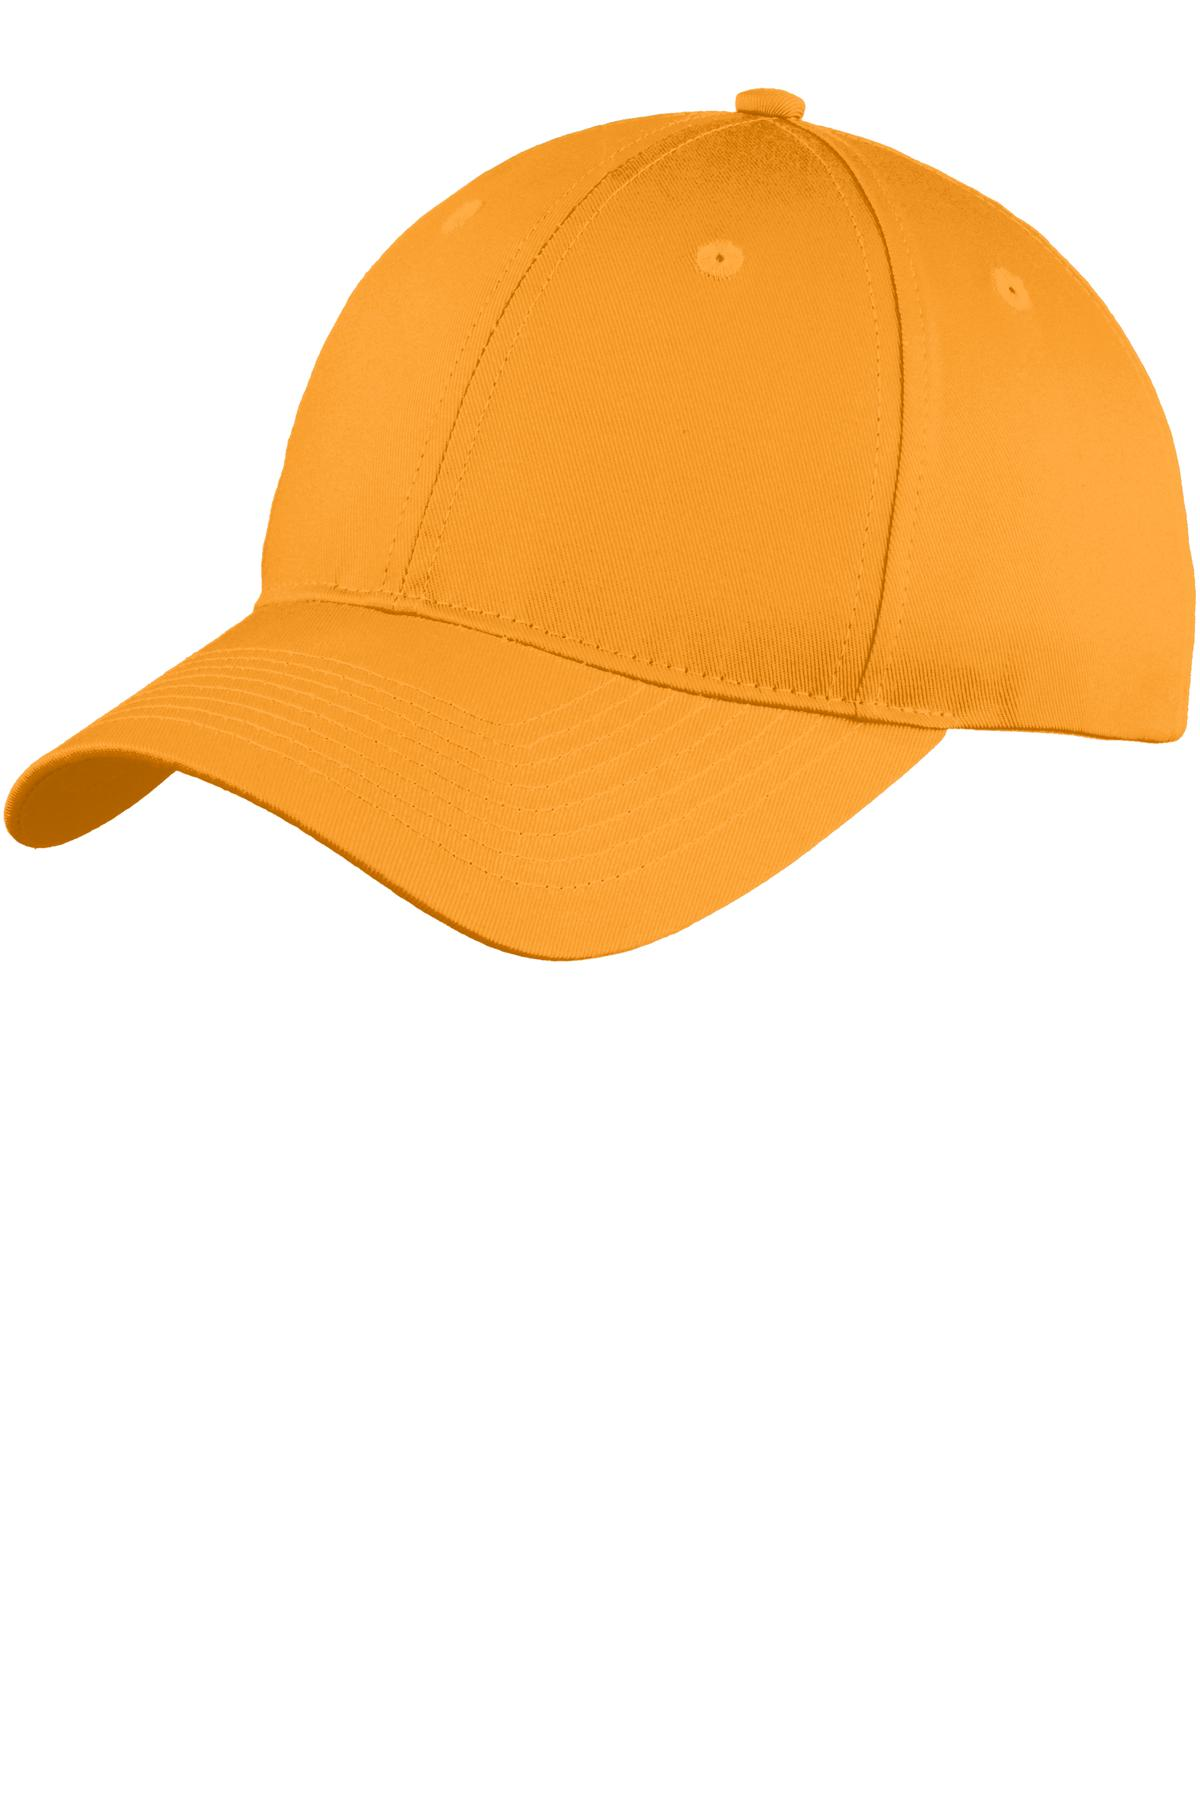 Port & Company ®  Six-Panel Unstructured Twill Cap. C914 - Athletic Gold